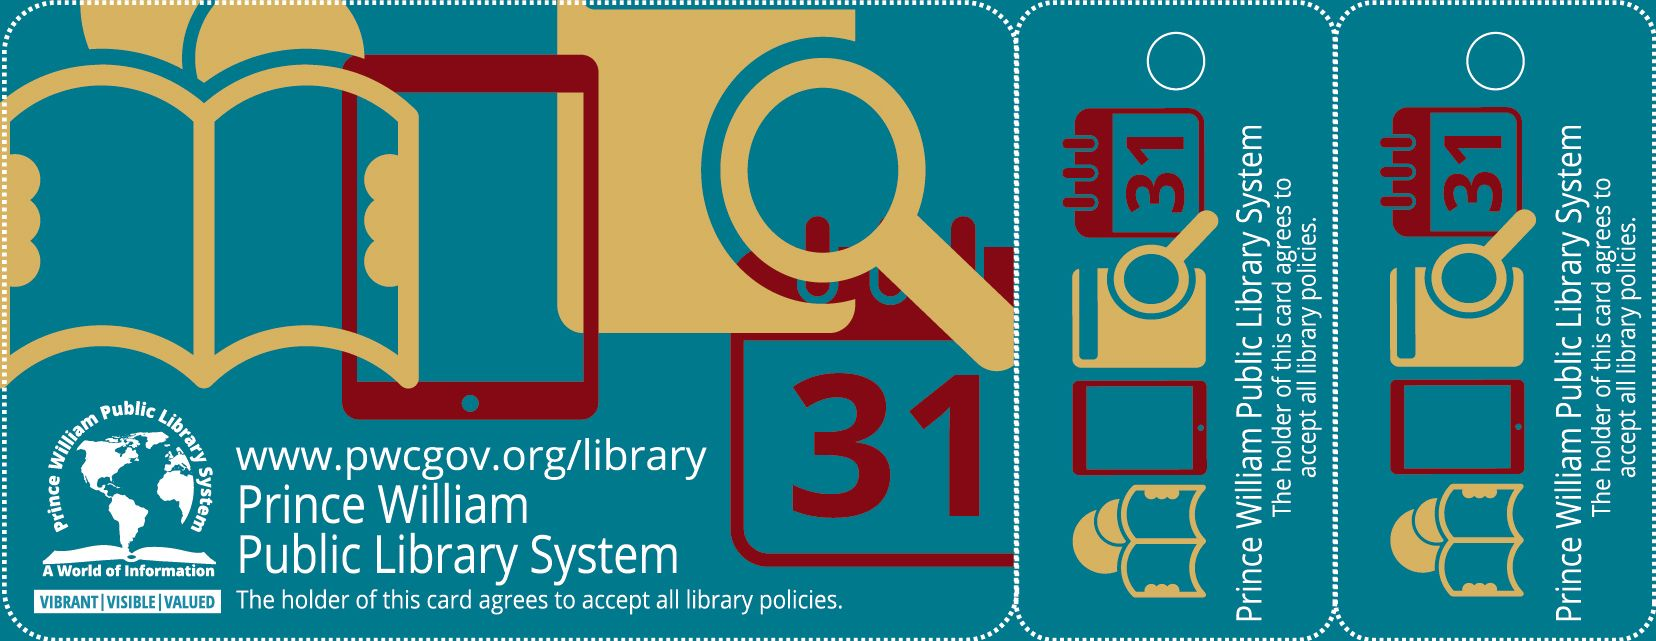 Library Graphic Design: New library card graphics